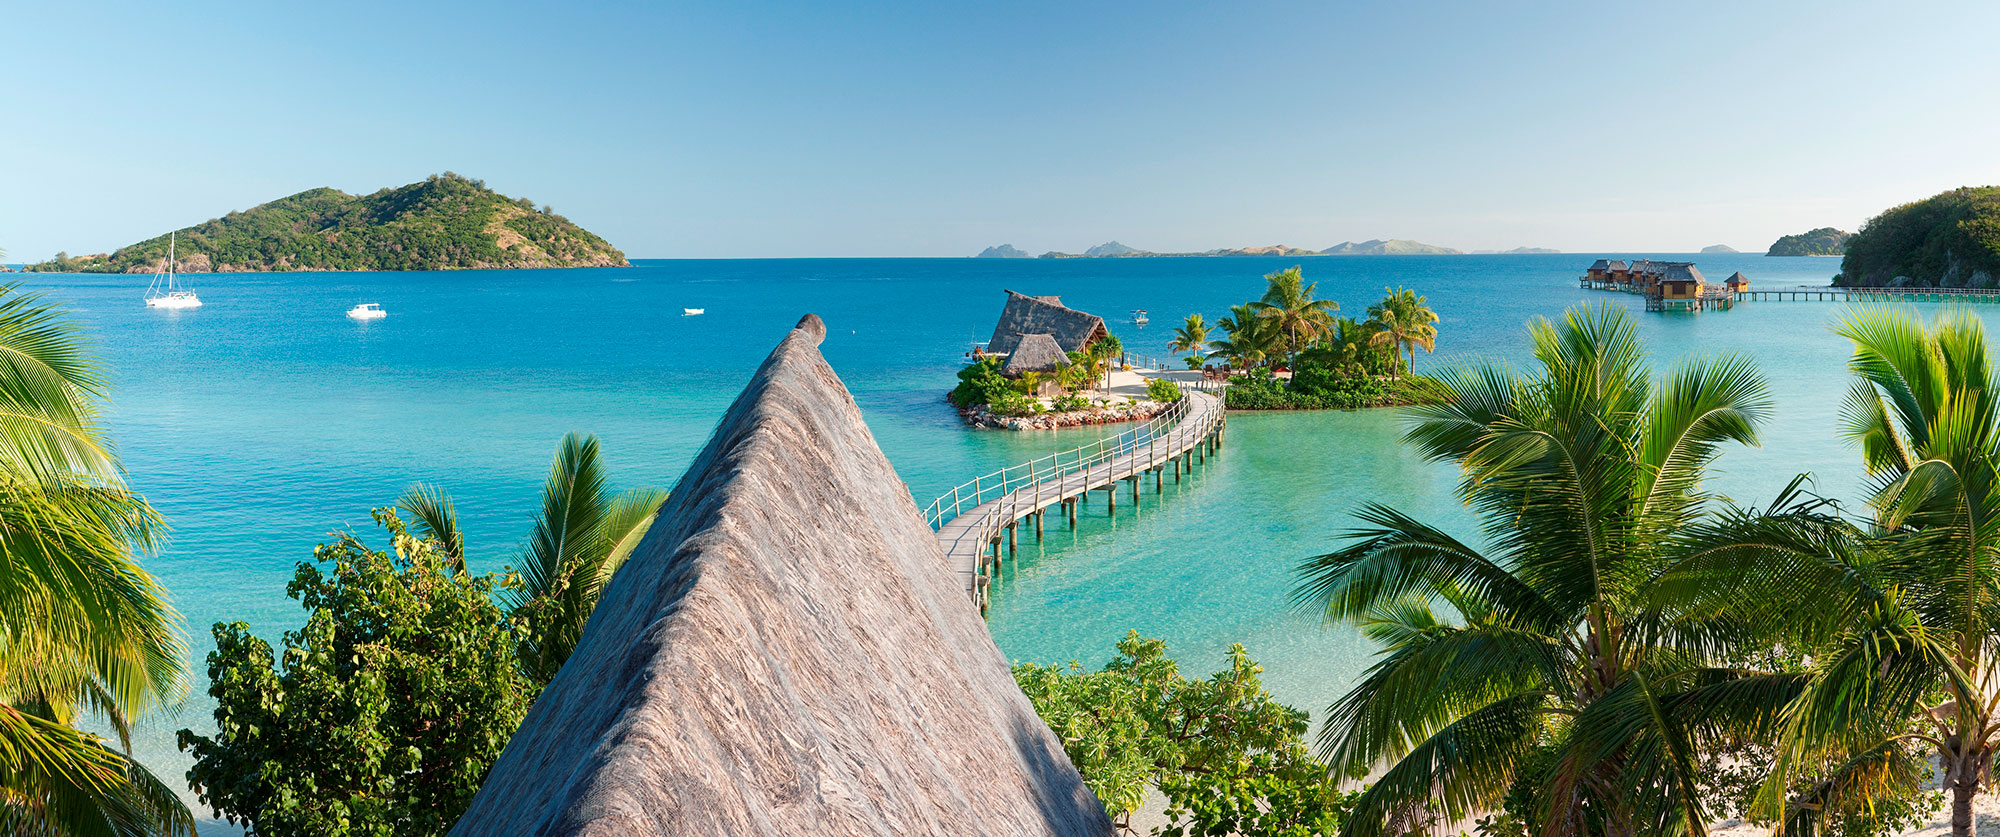 Fiji Overwater Bungalows Beach Resort Vacation